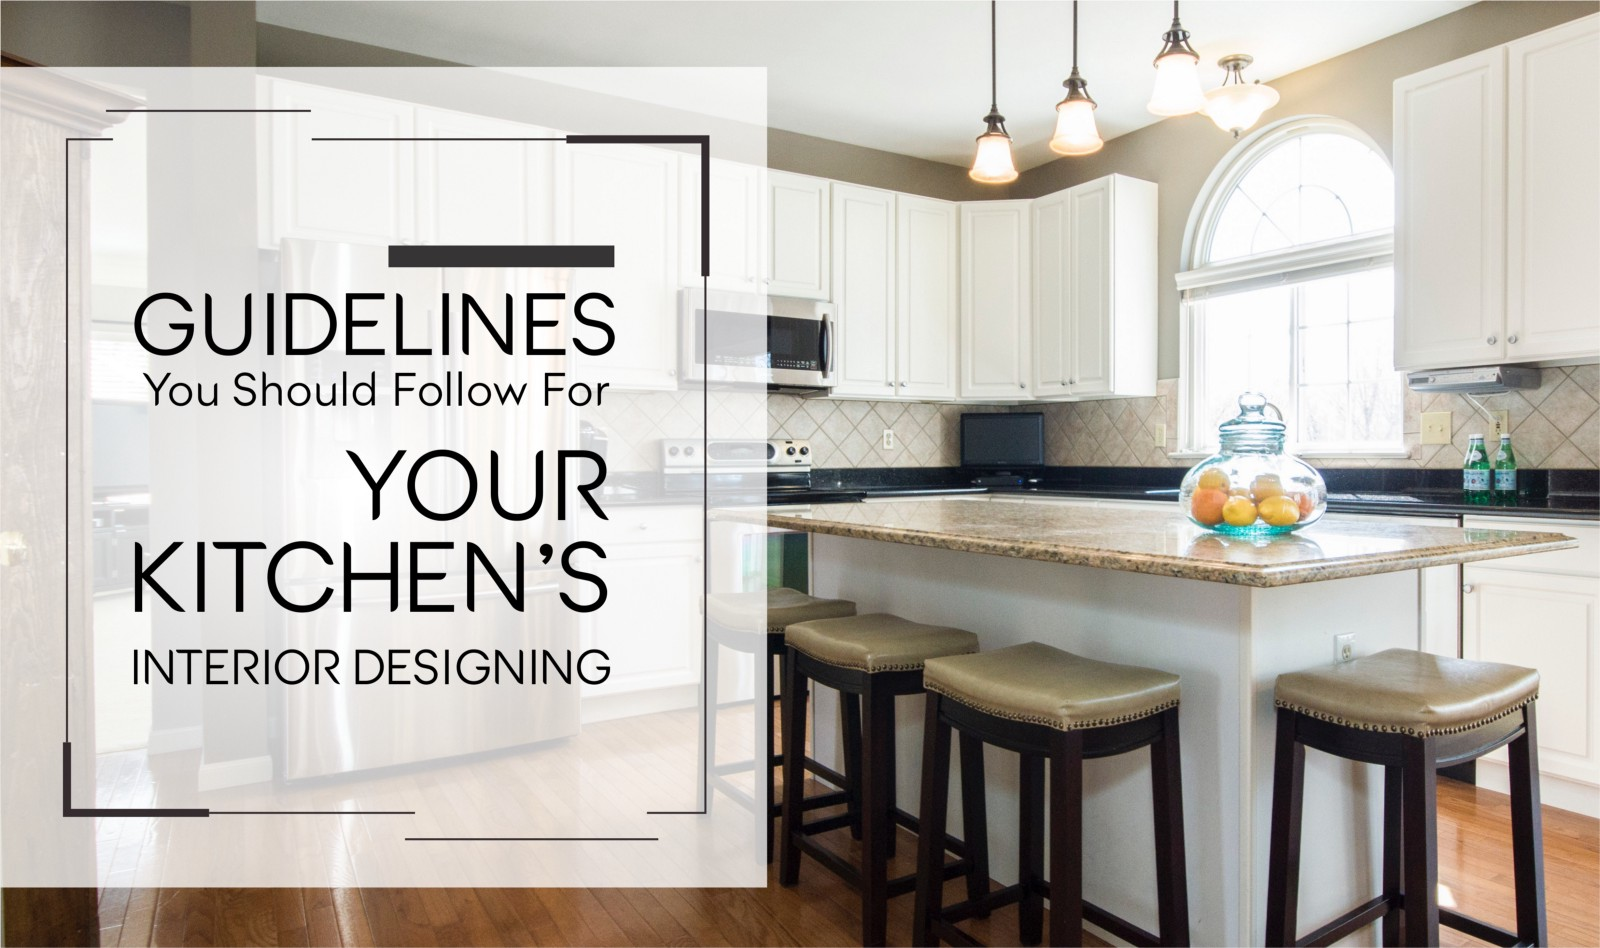 redesigning a kitchen commercial kitchens guidelines you should follow for your s interior designing